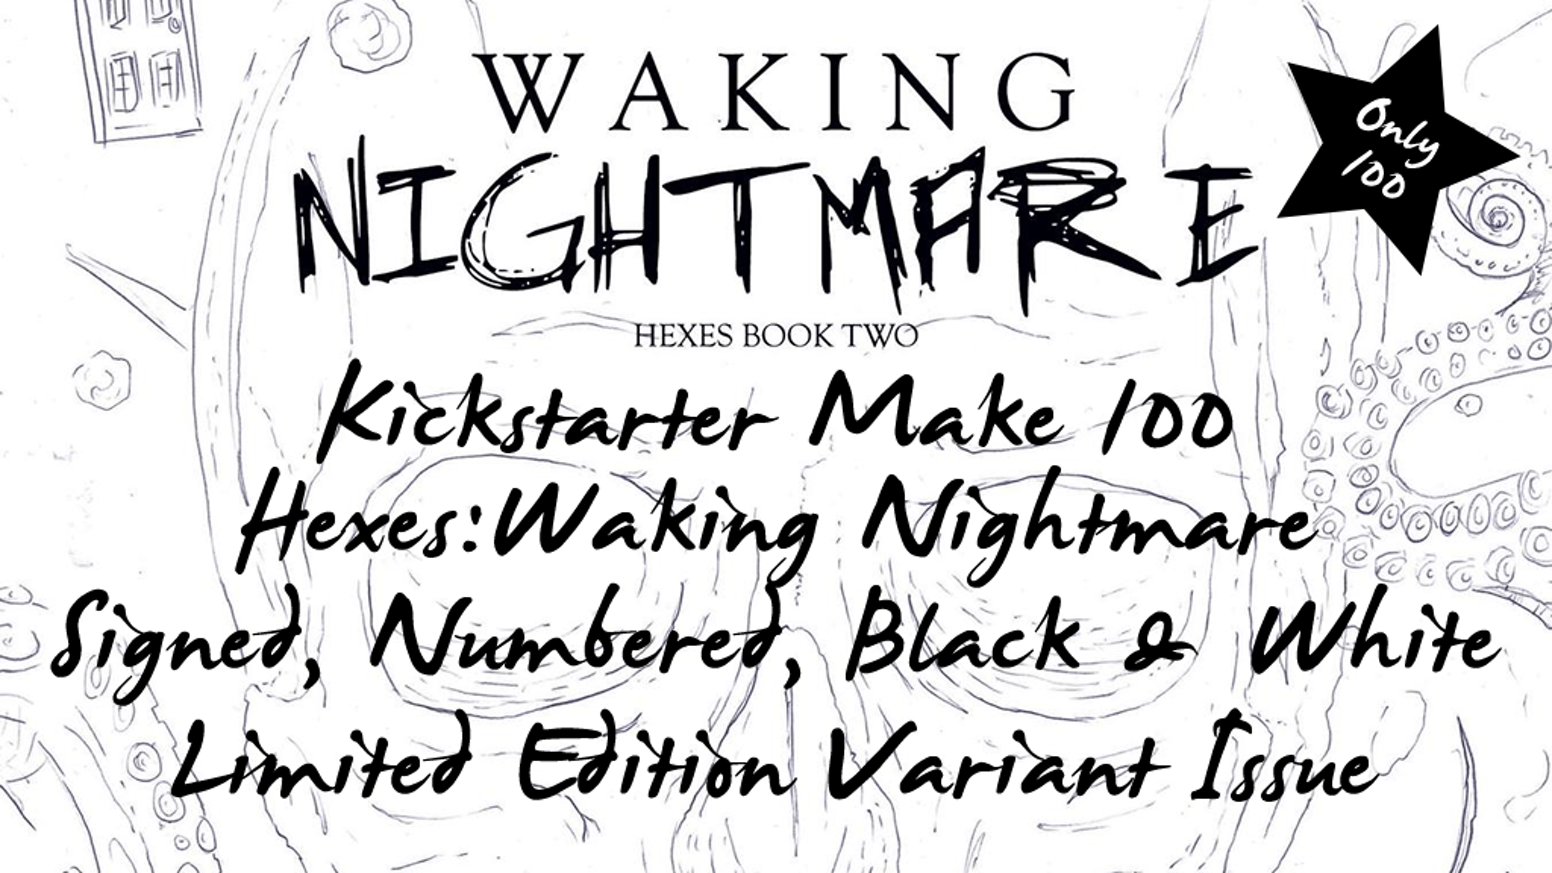 Get our popular Hexes:Waking Nightmare comic as a signed, numbered, black & white variant issue - only 100 copies - not to be repeated!